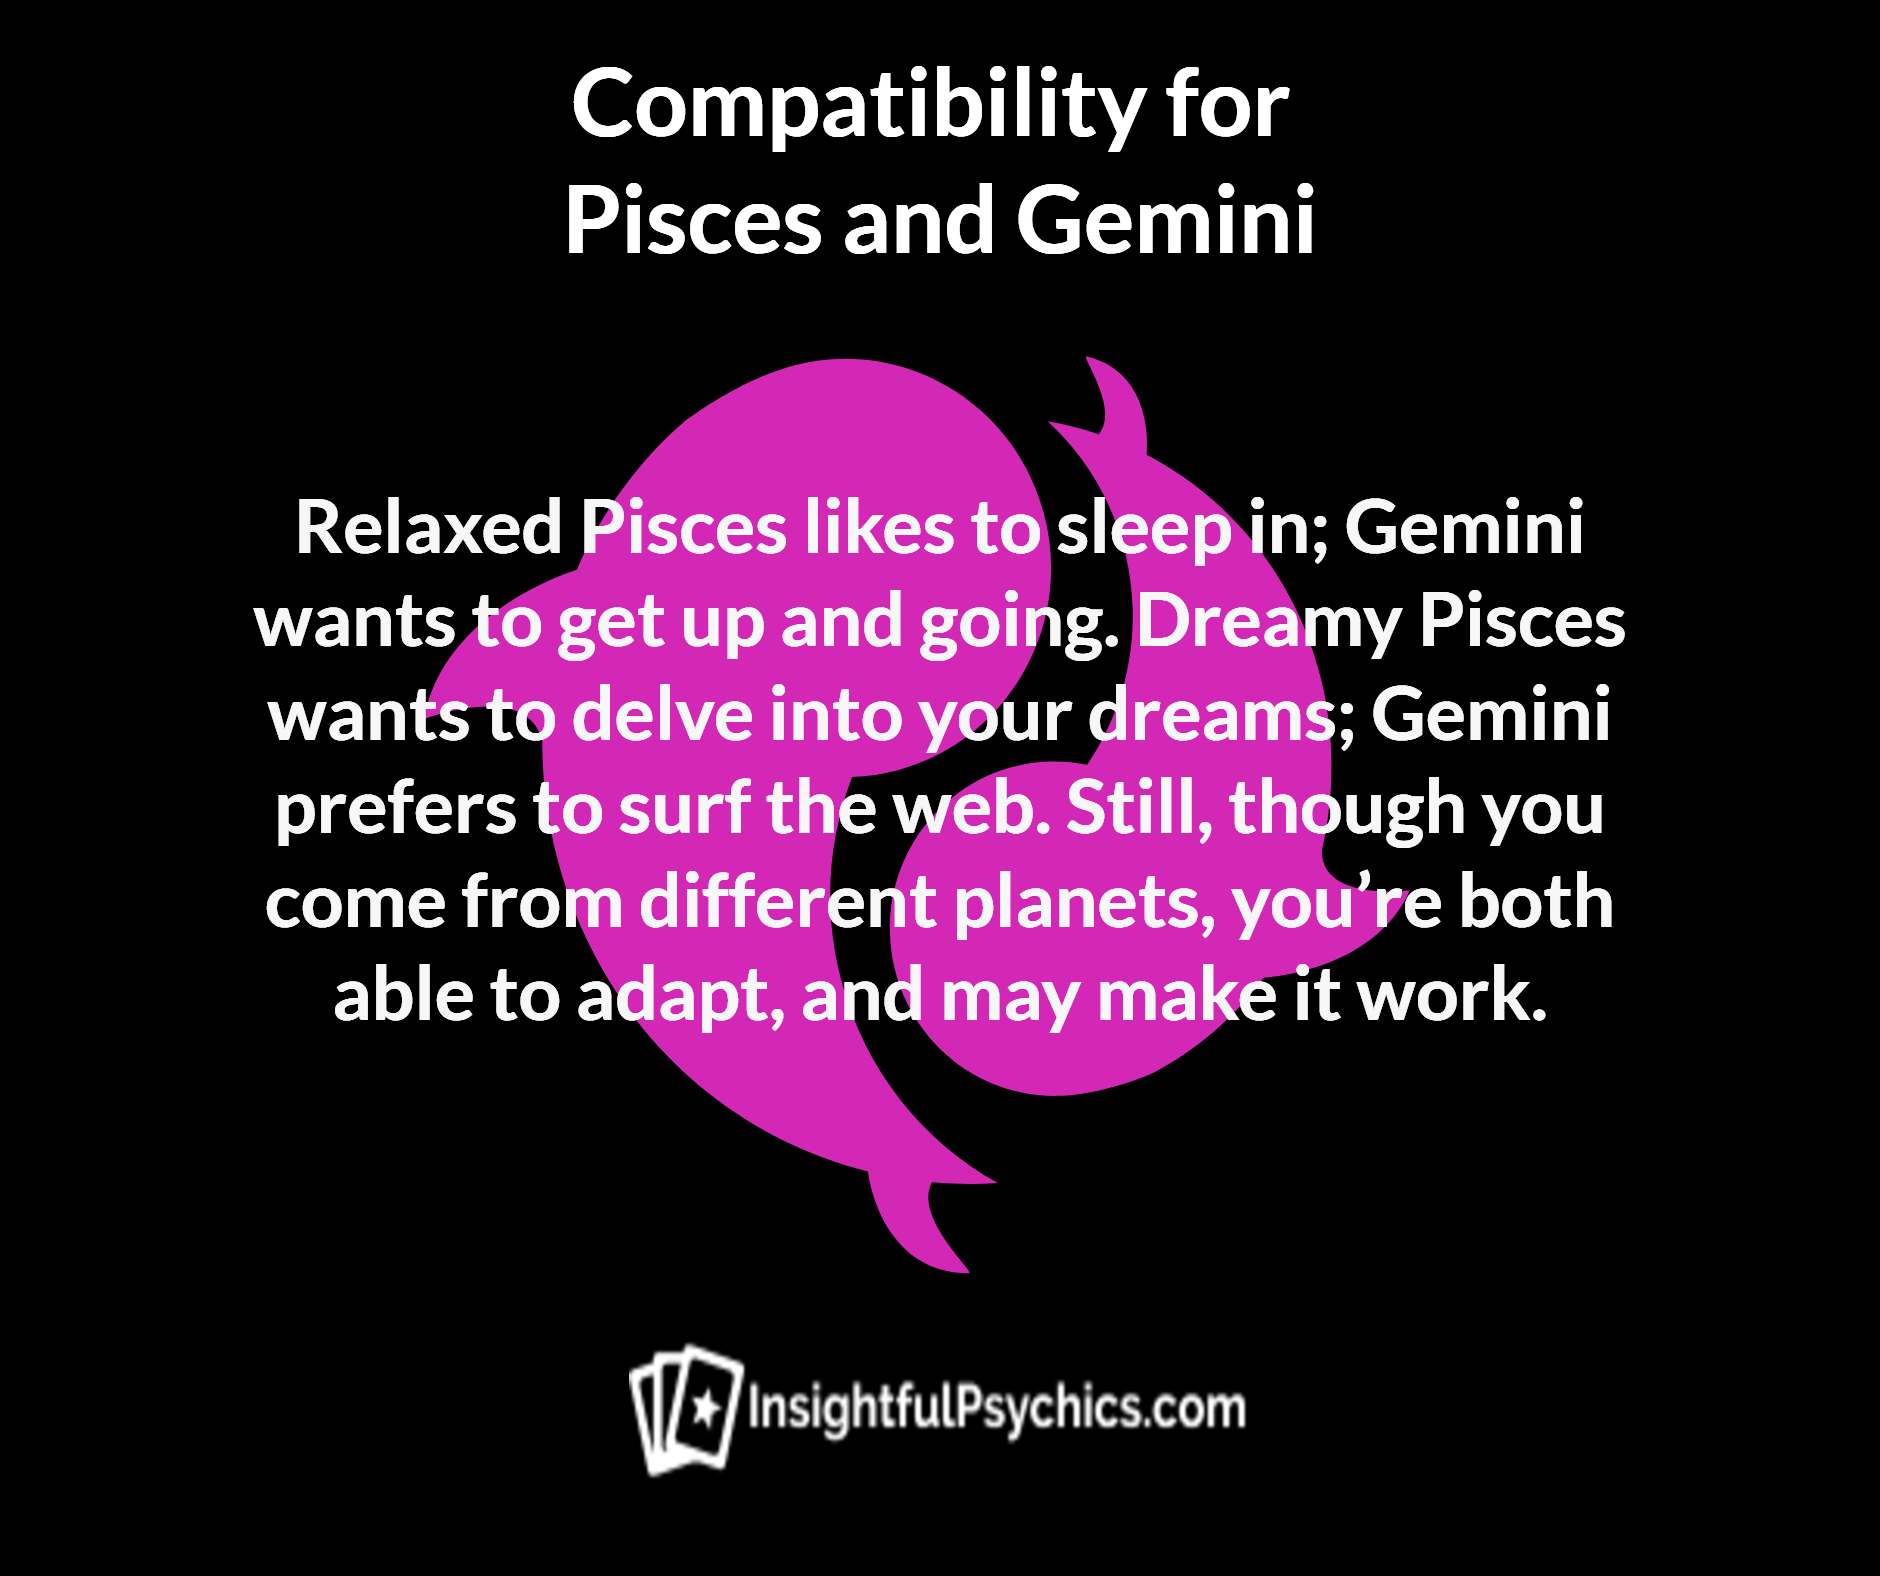 pisces and gemini dating compatibility